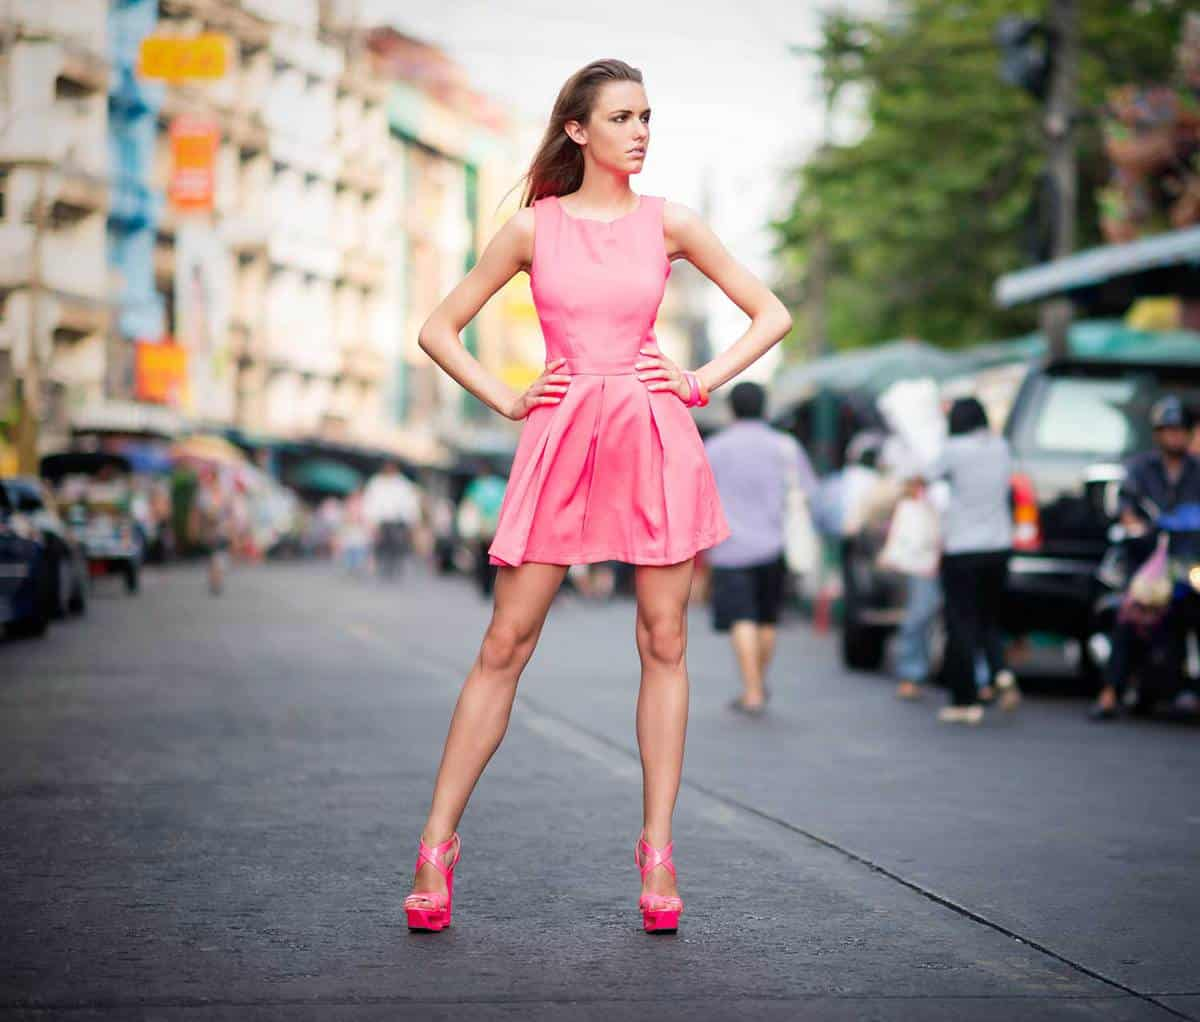 Beautiful model posing on the streets wearing pink dress and pink heels